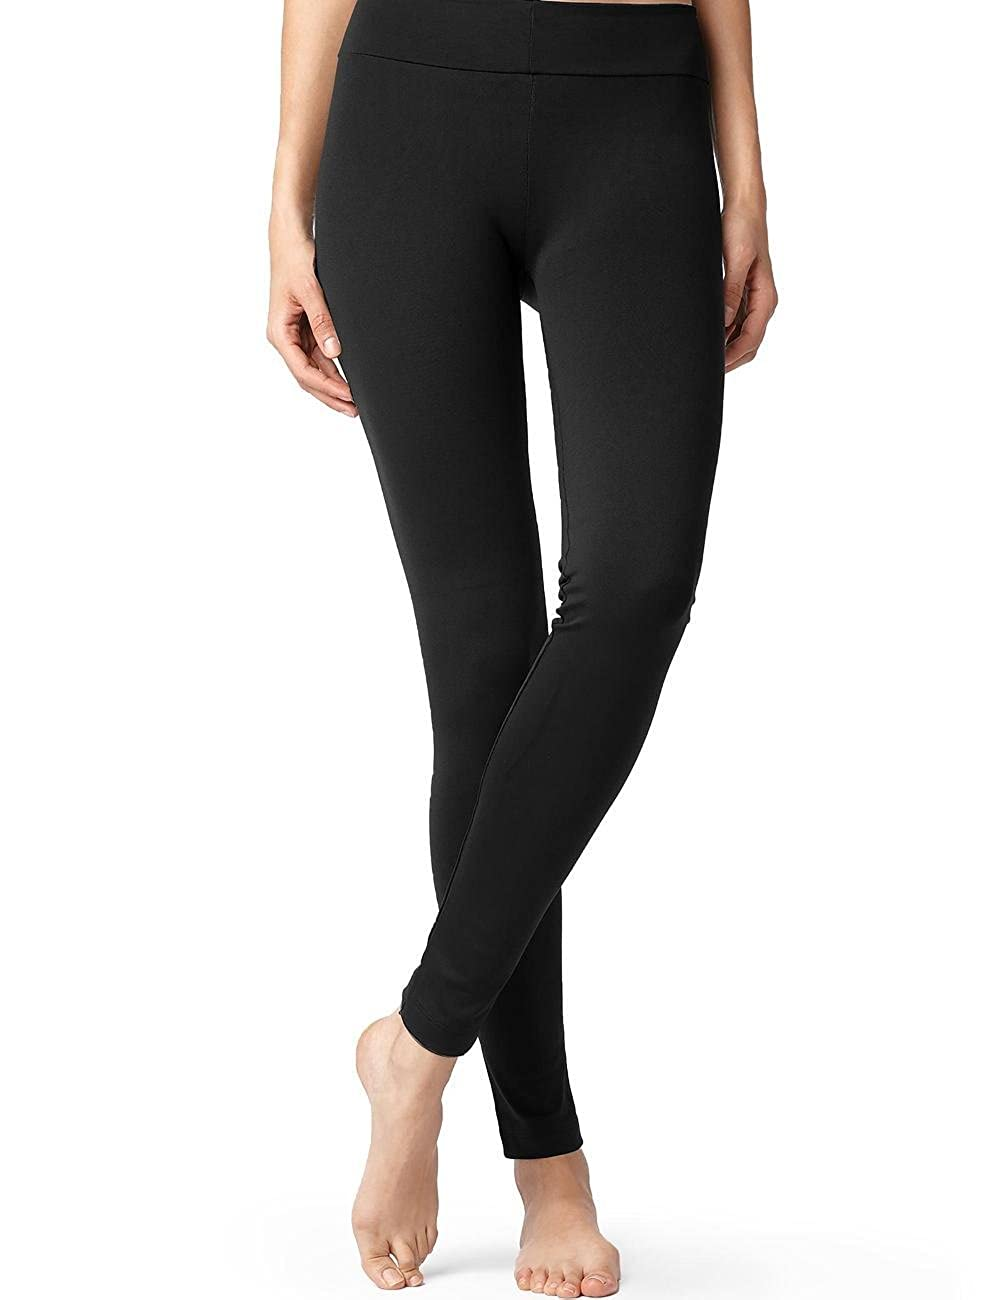 Calzedonia Womens Push Up Leggings